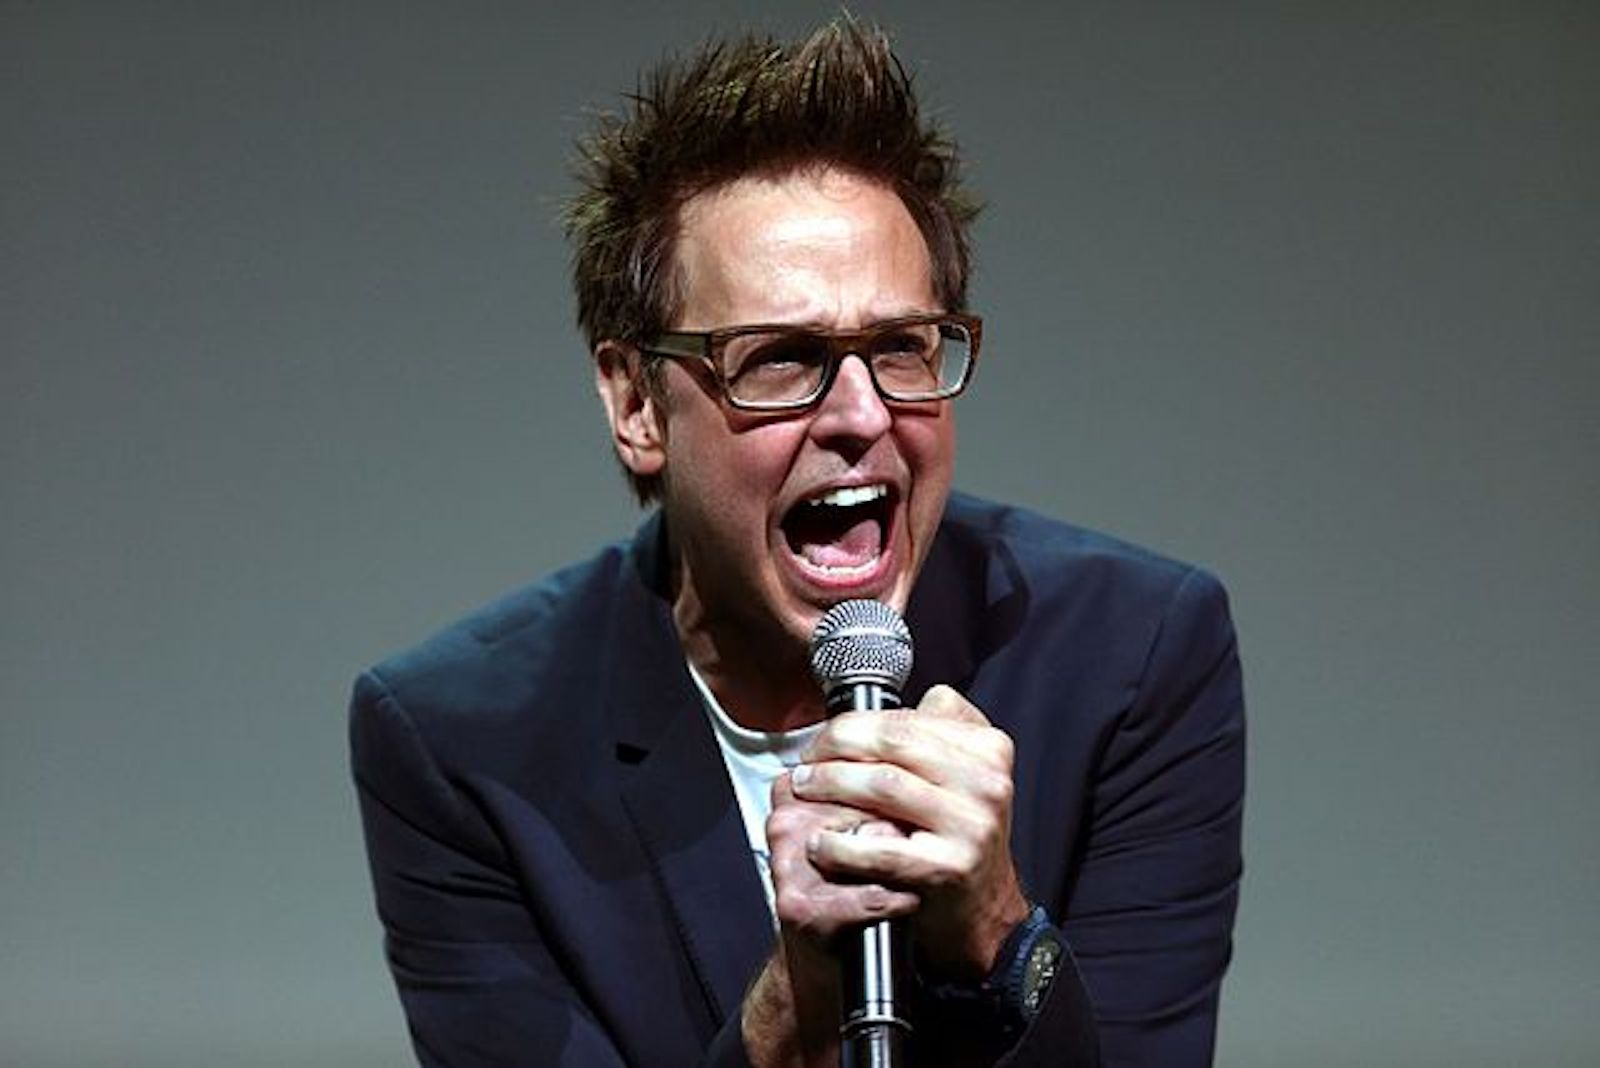 James Gunn Making More Movies For DC